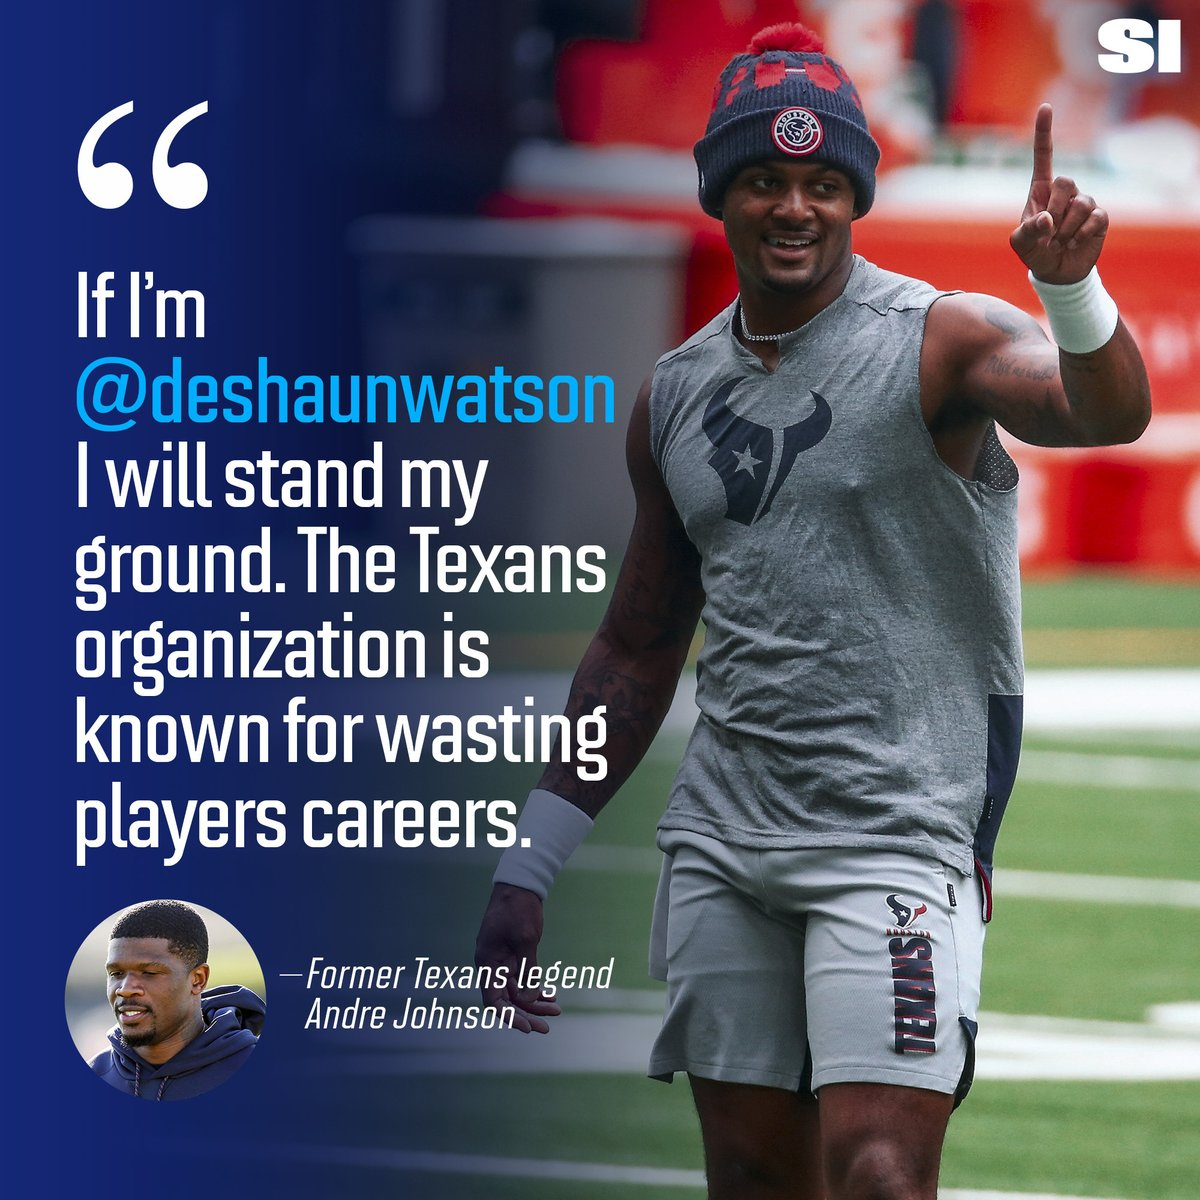 RT @SInow: Andre Johnson doesn't want Deshaun Watson to waste away his career: https://t.co/kzGCKNNjcn